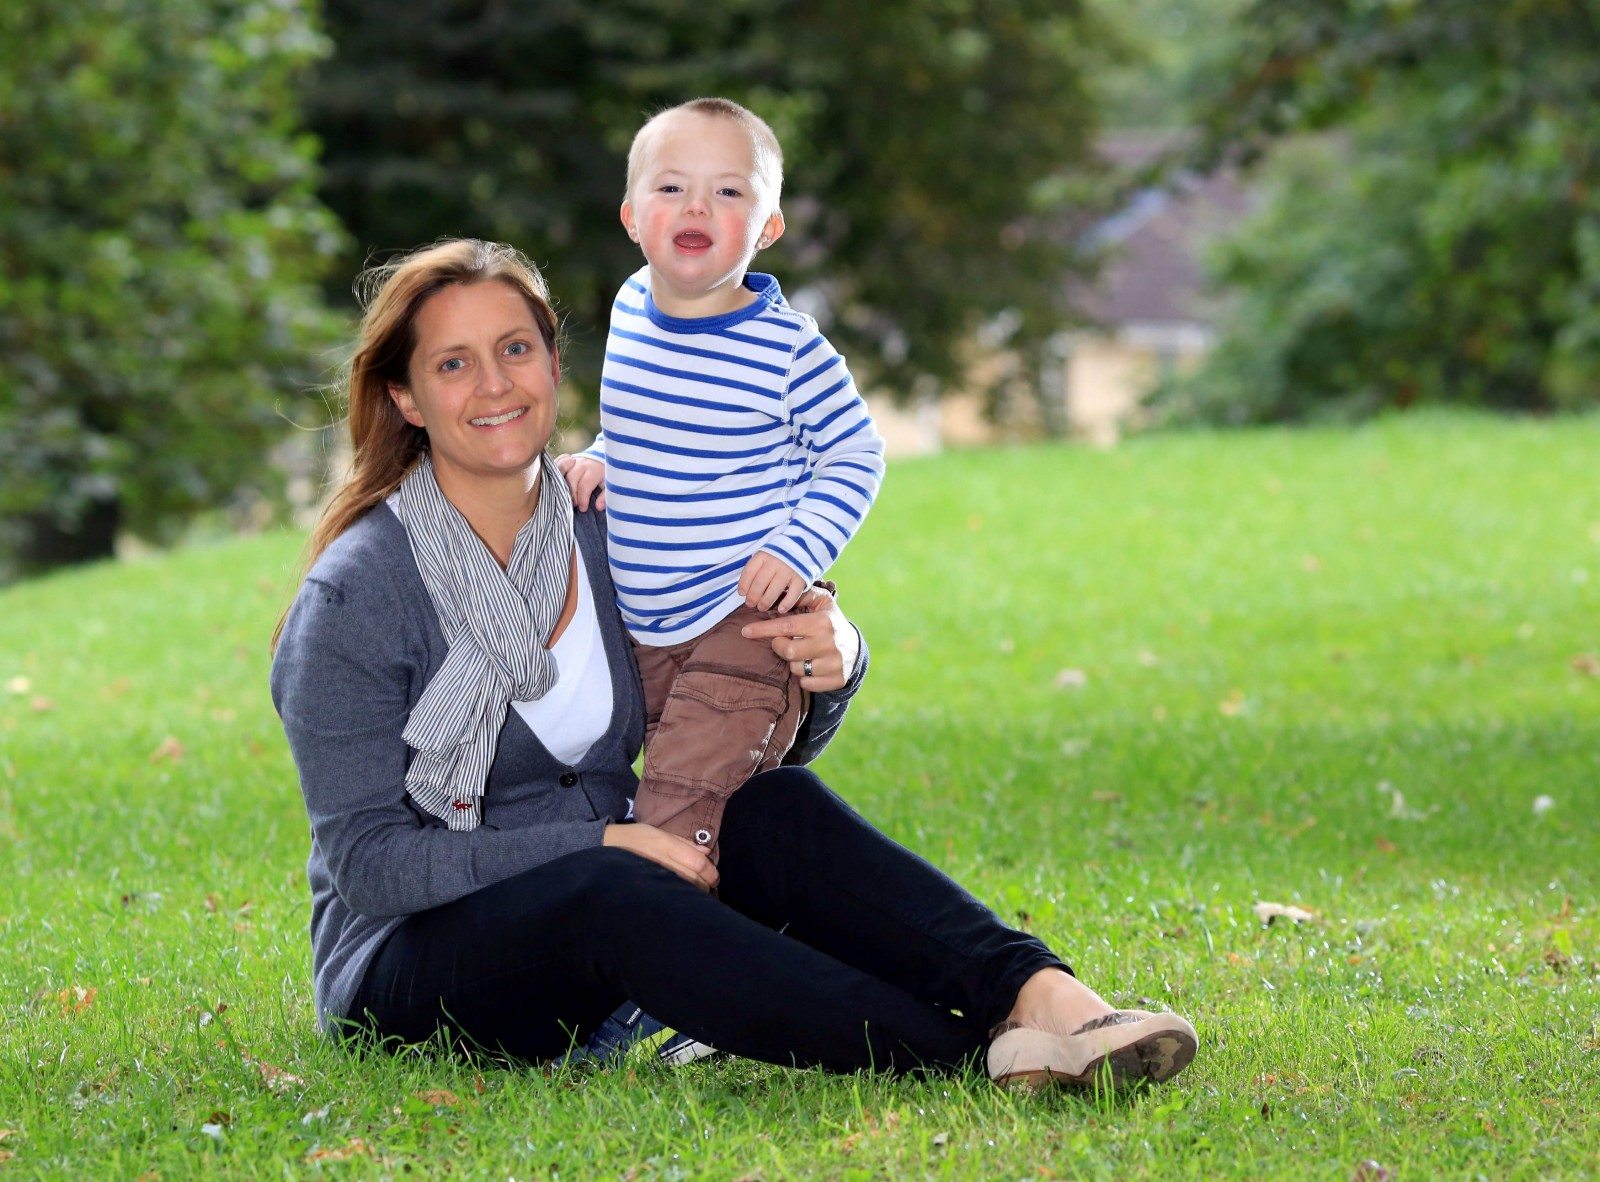 A mum's heartfelt 'thank you' to shop assistant who comforted her special little boy